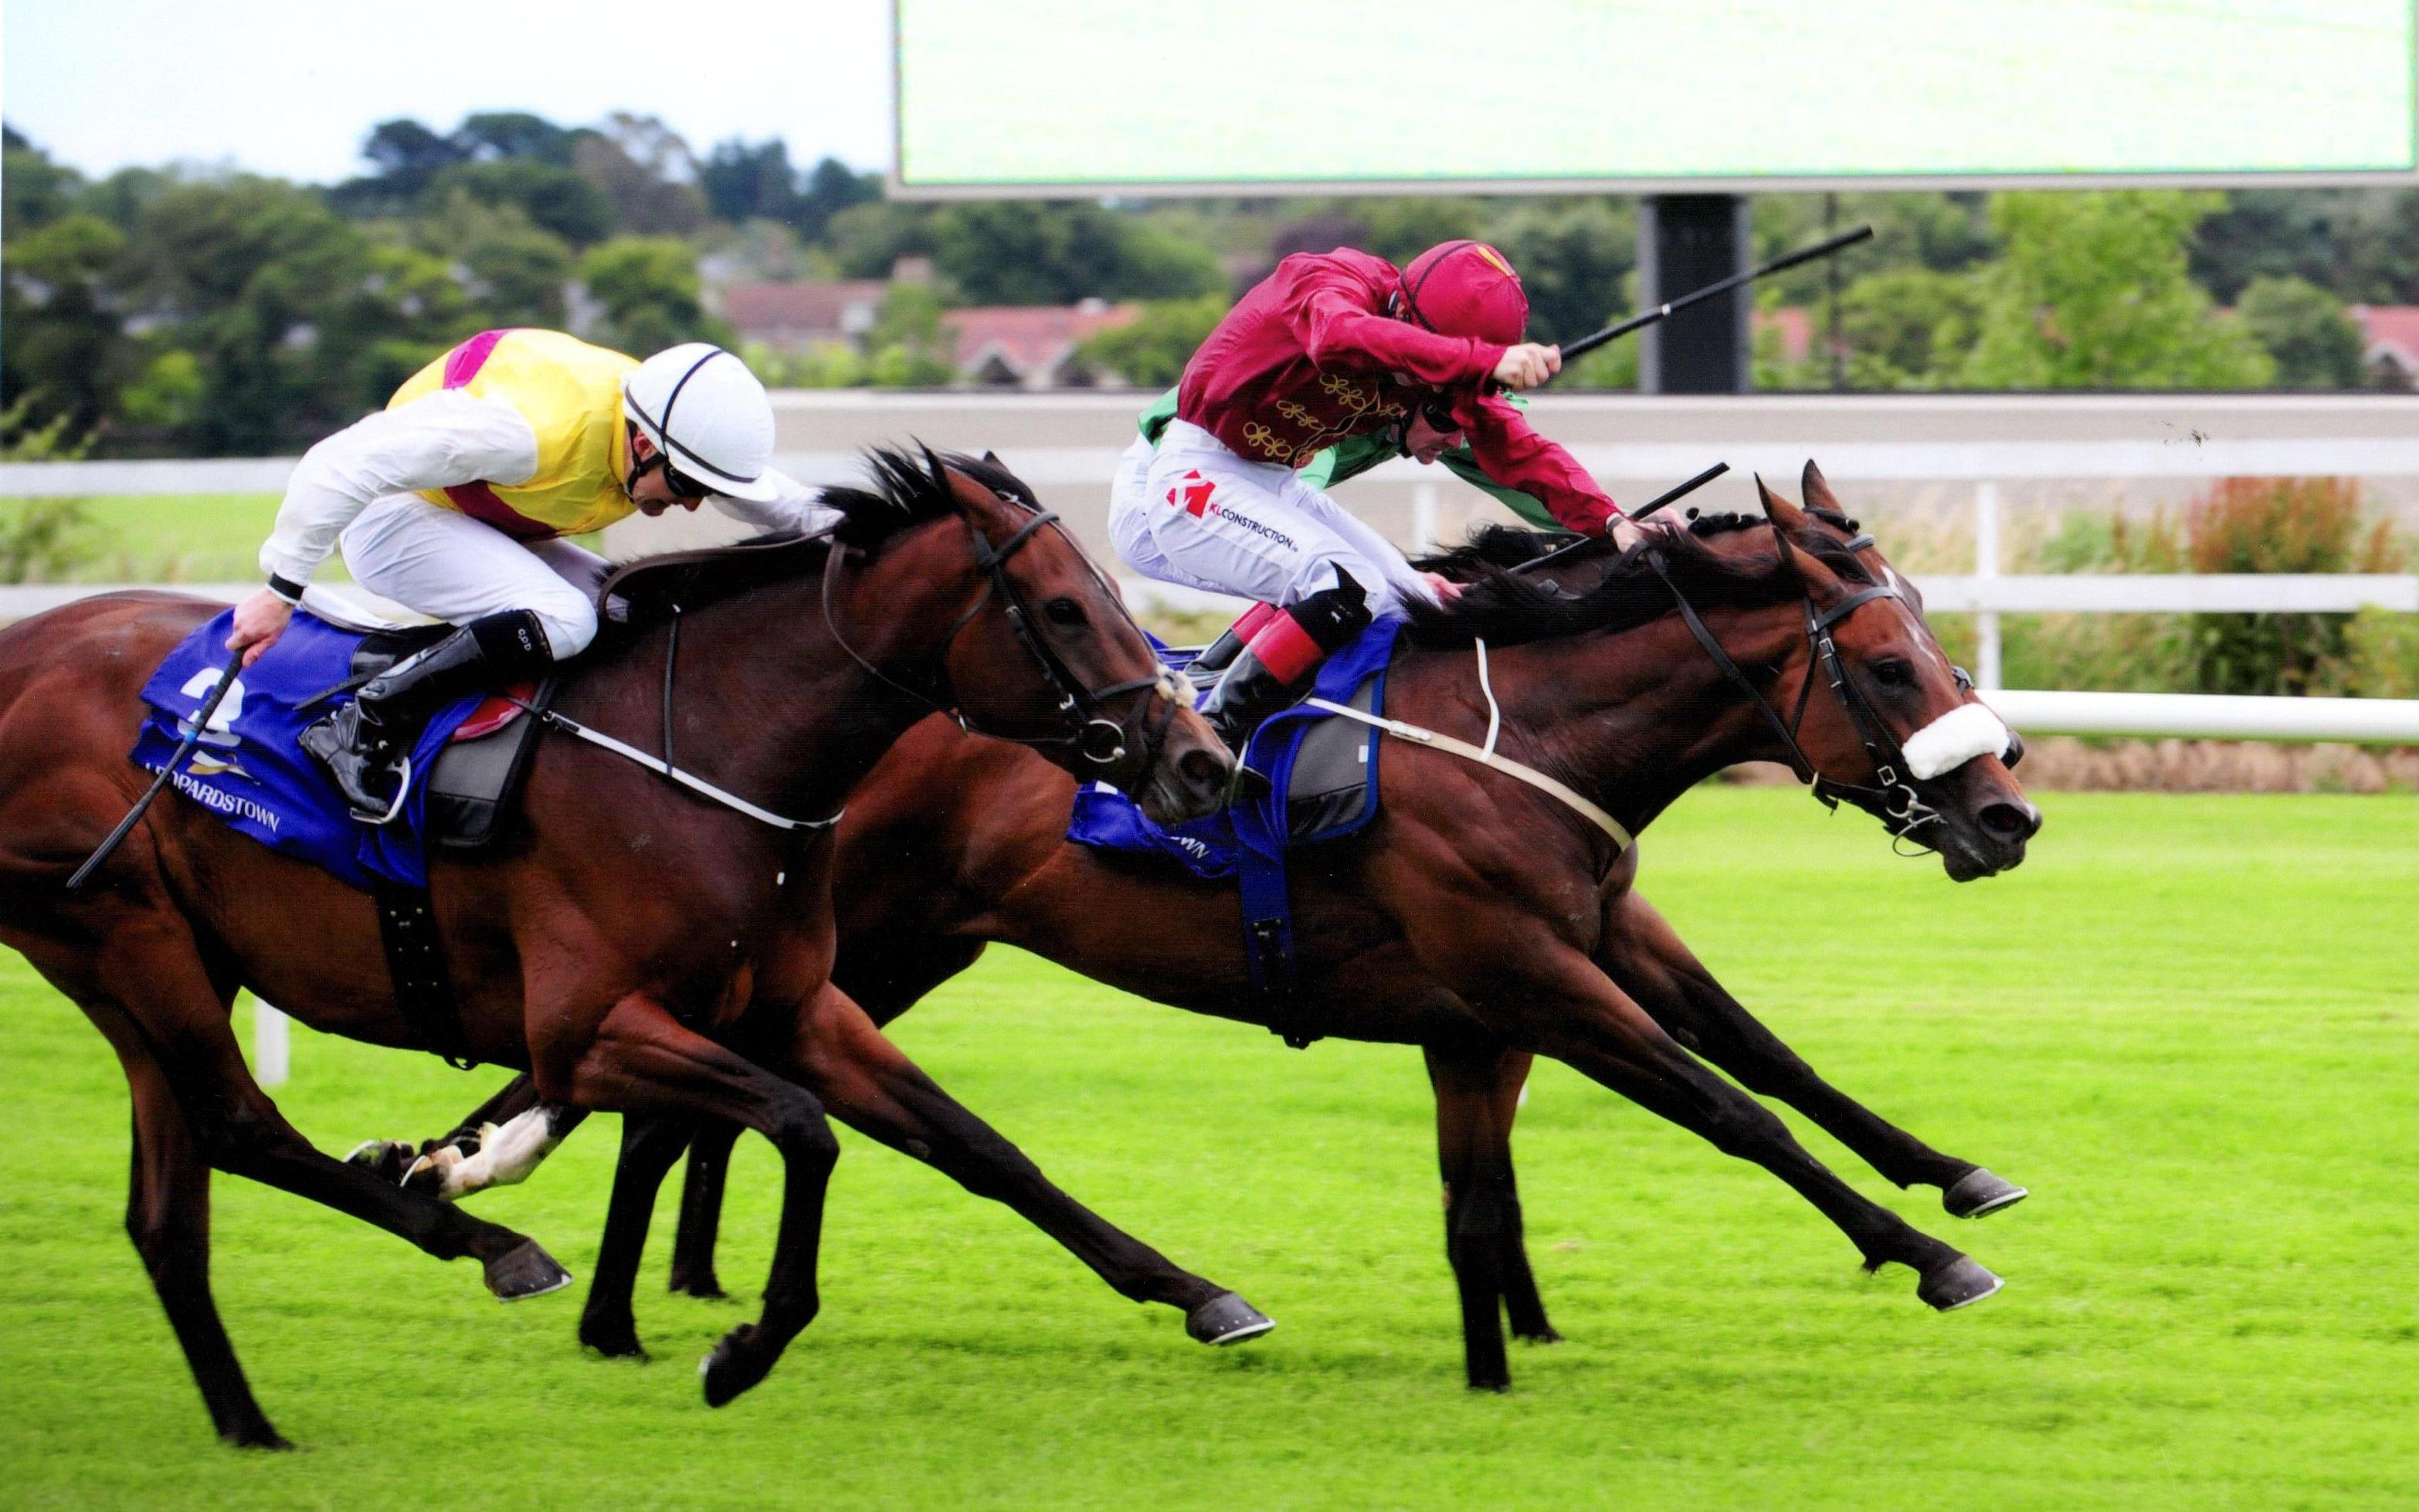 LIGHTENING FAST bounces back at Leopardstown 13th July 2017